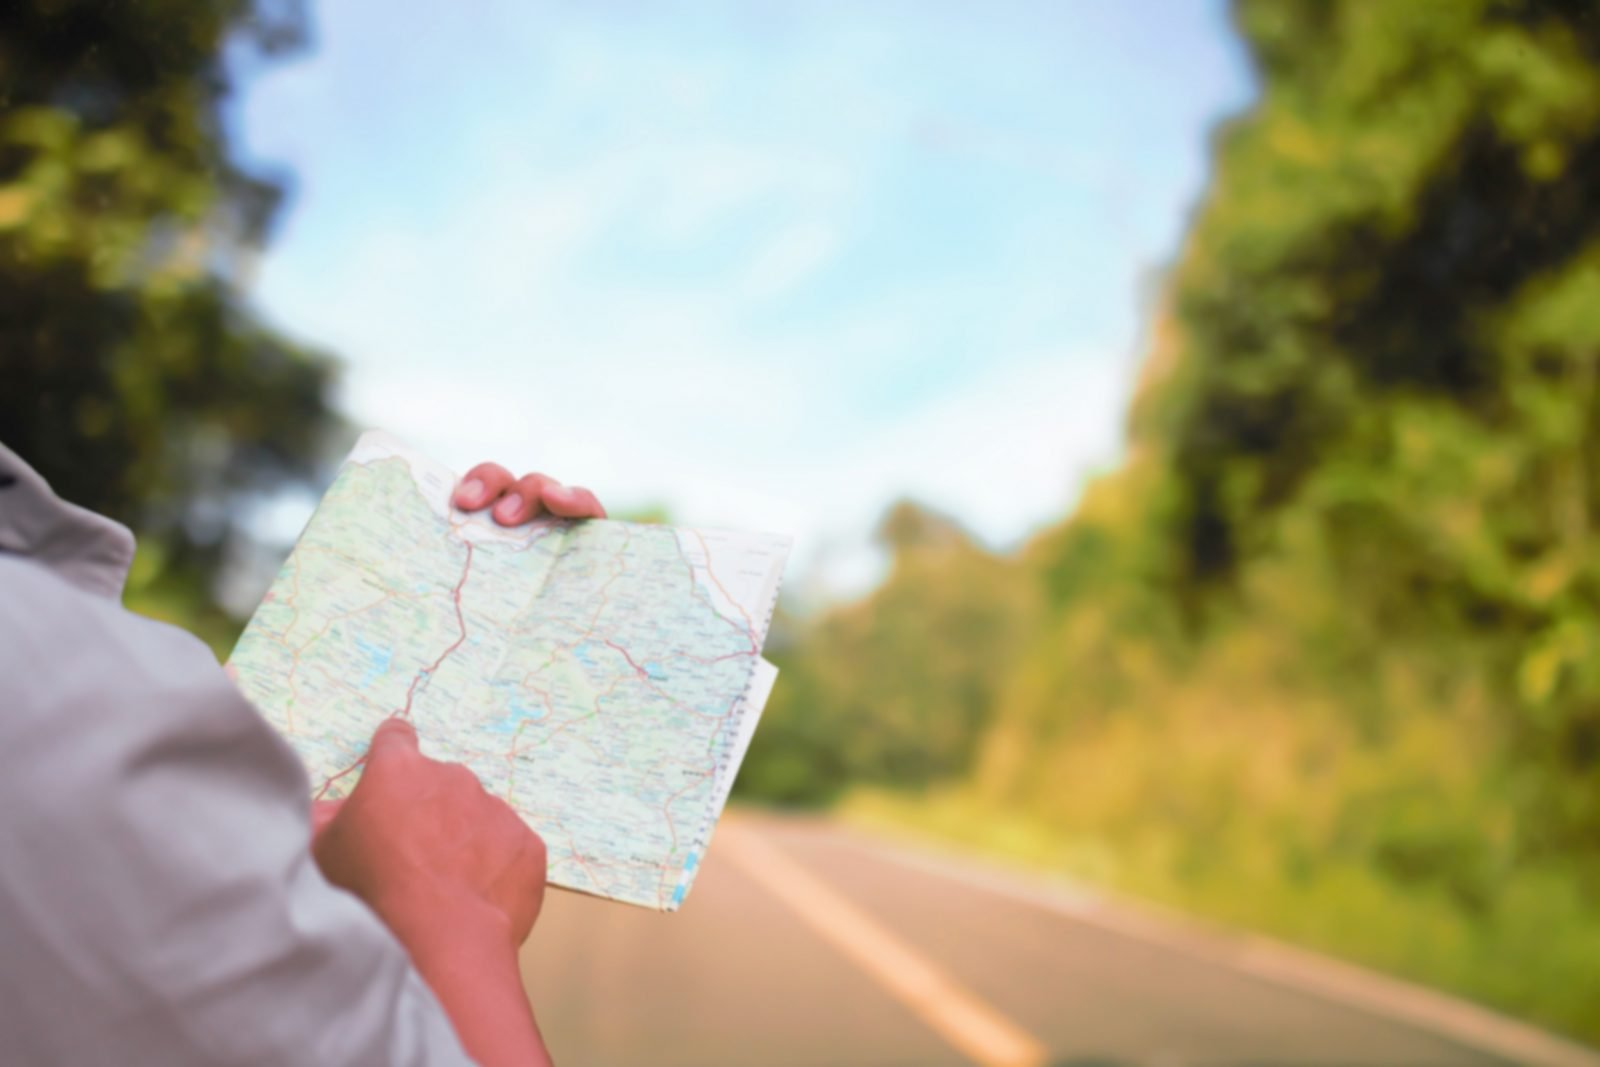 Image of someone who is standing mostly off screen to the left holding a map in front of of a road with trees to the right